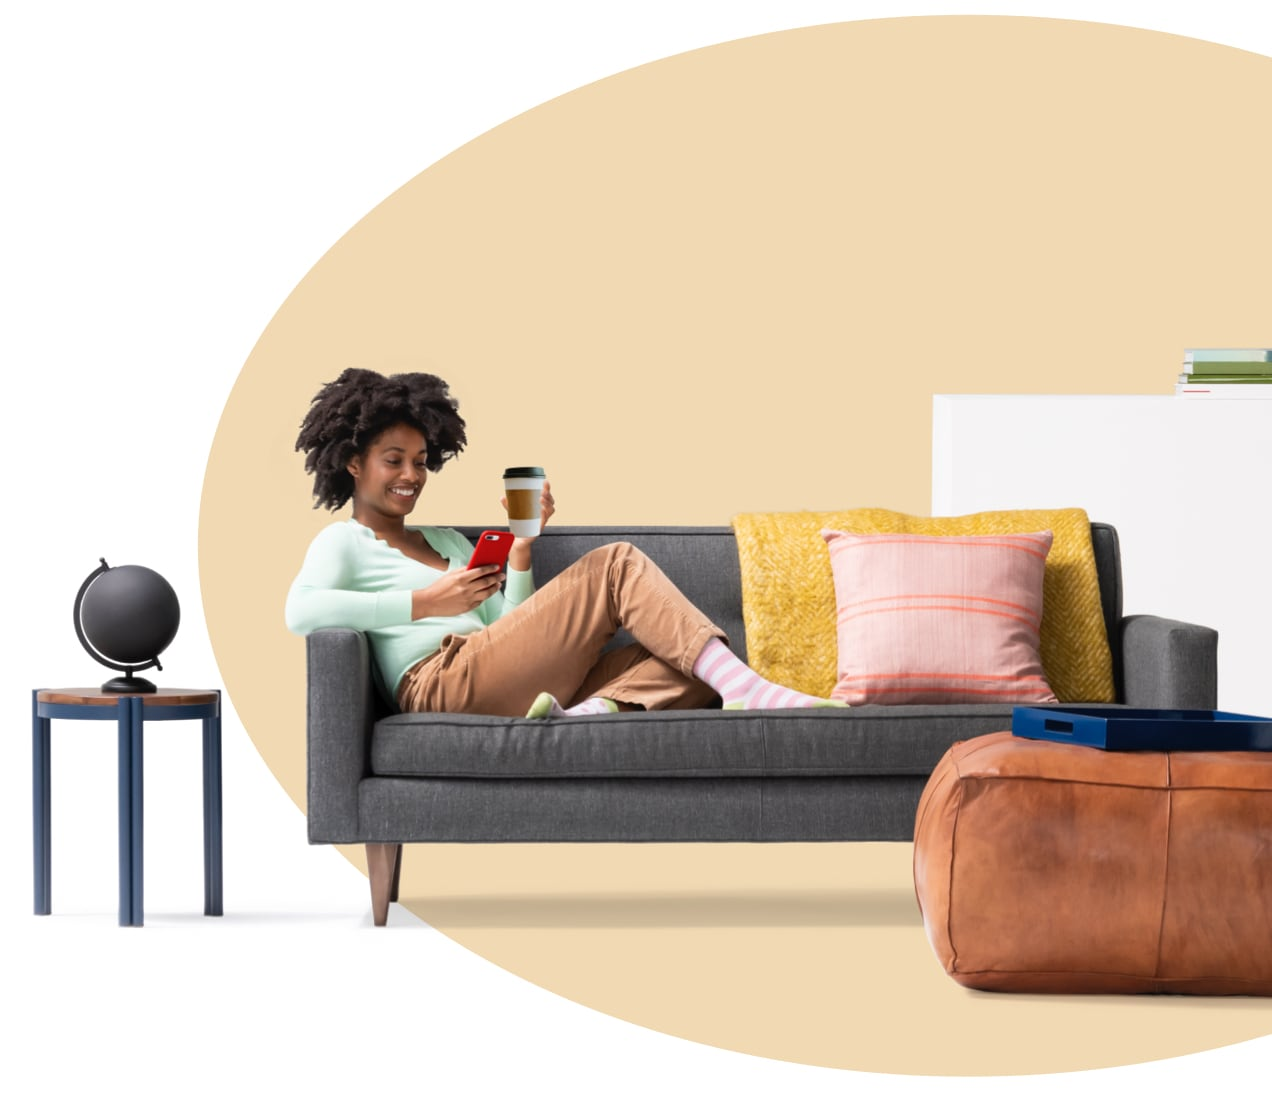 Woman sitting on couch holding a glass of water while reading her iPhone about what renters insurance covers. A globe sits on side table.